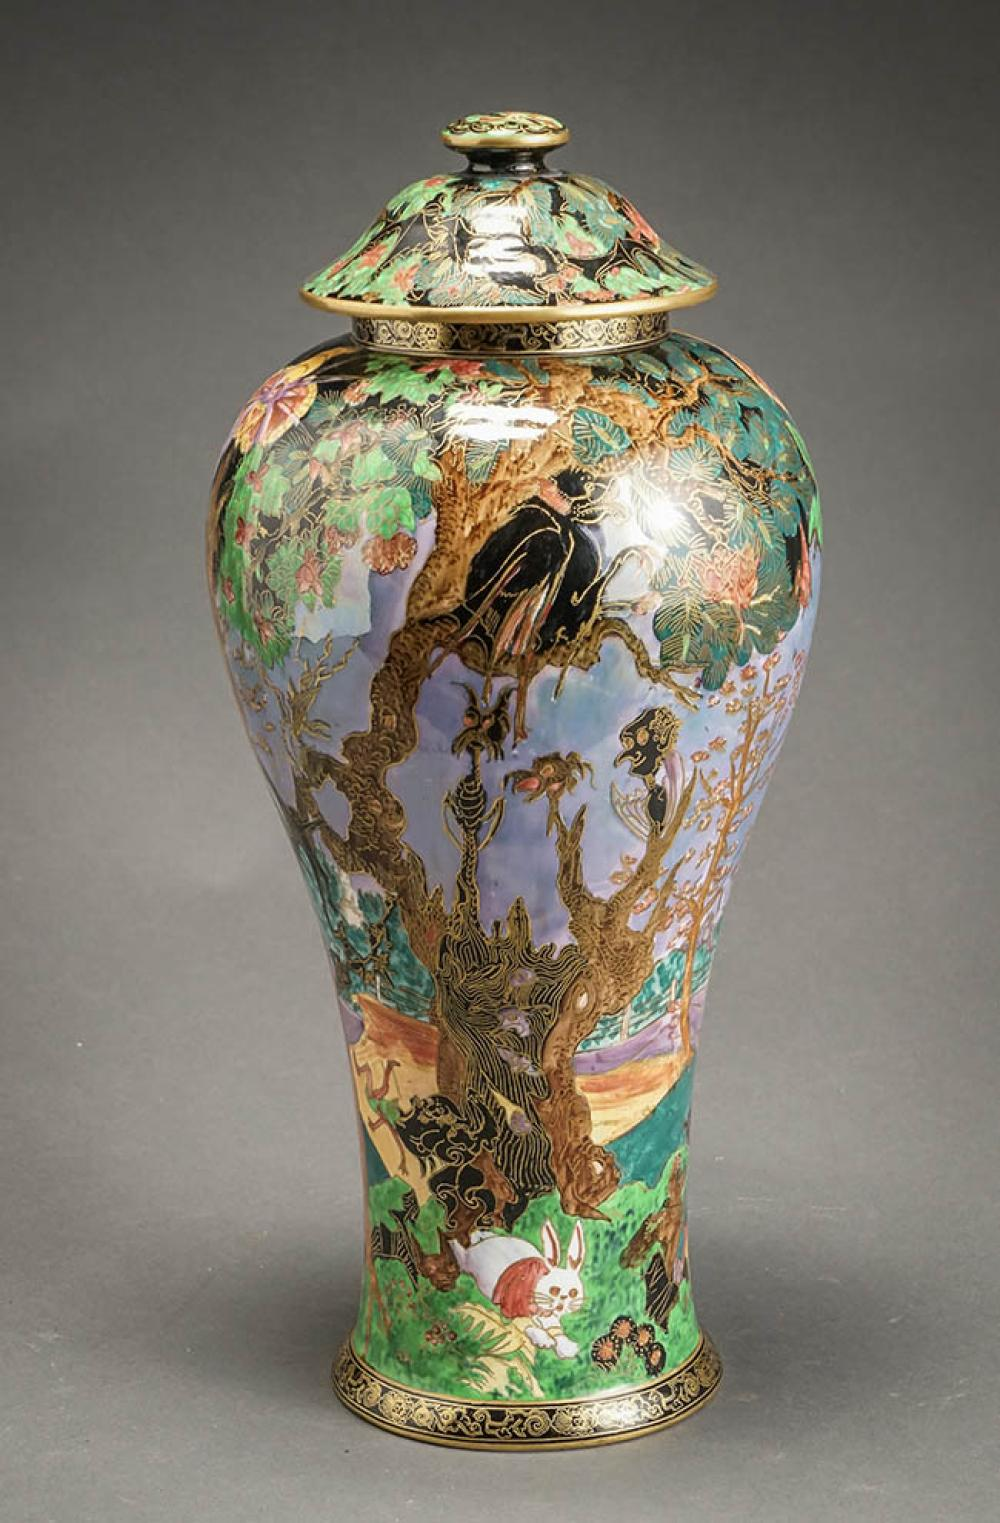 Wedgwood Fairyland Lustre 'Ghostly Wood' Covered Vase Designed by Daisy Makeig-Jones, Circa 1915-1931